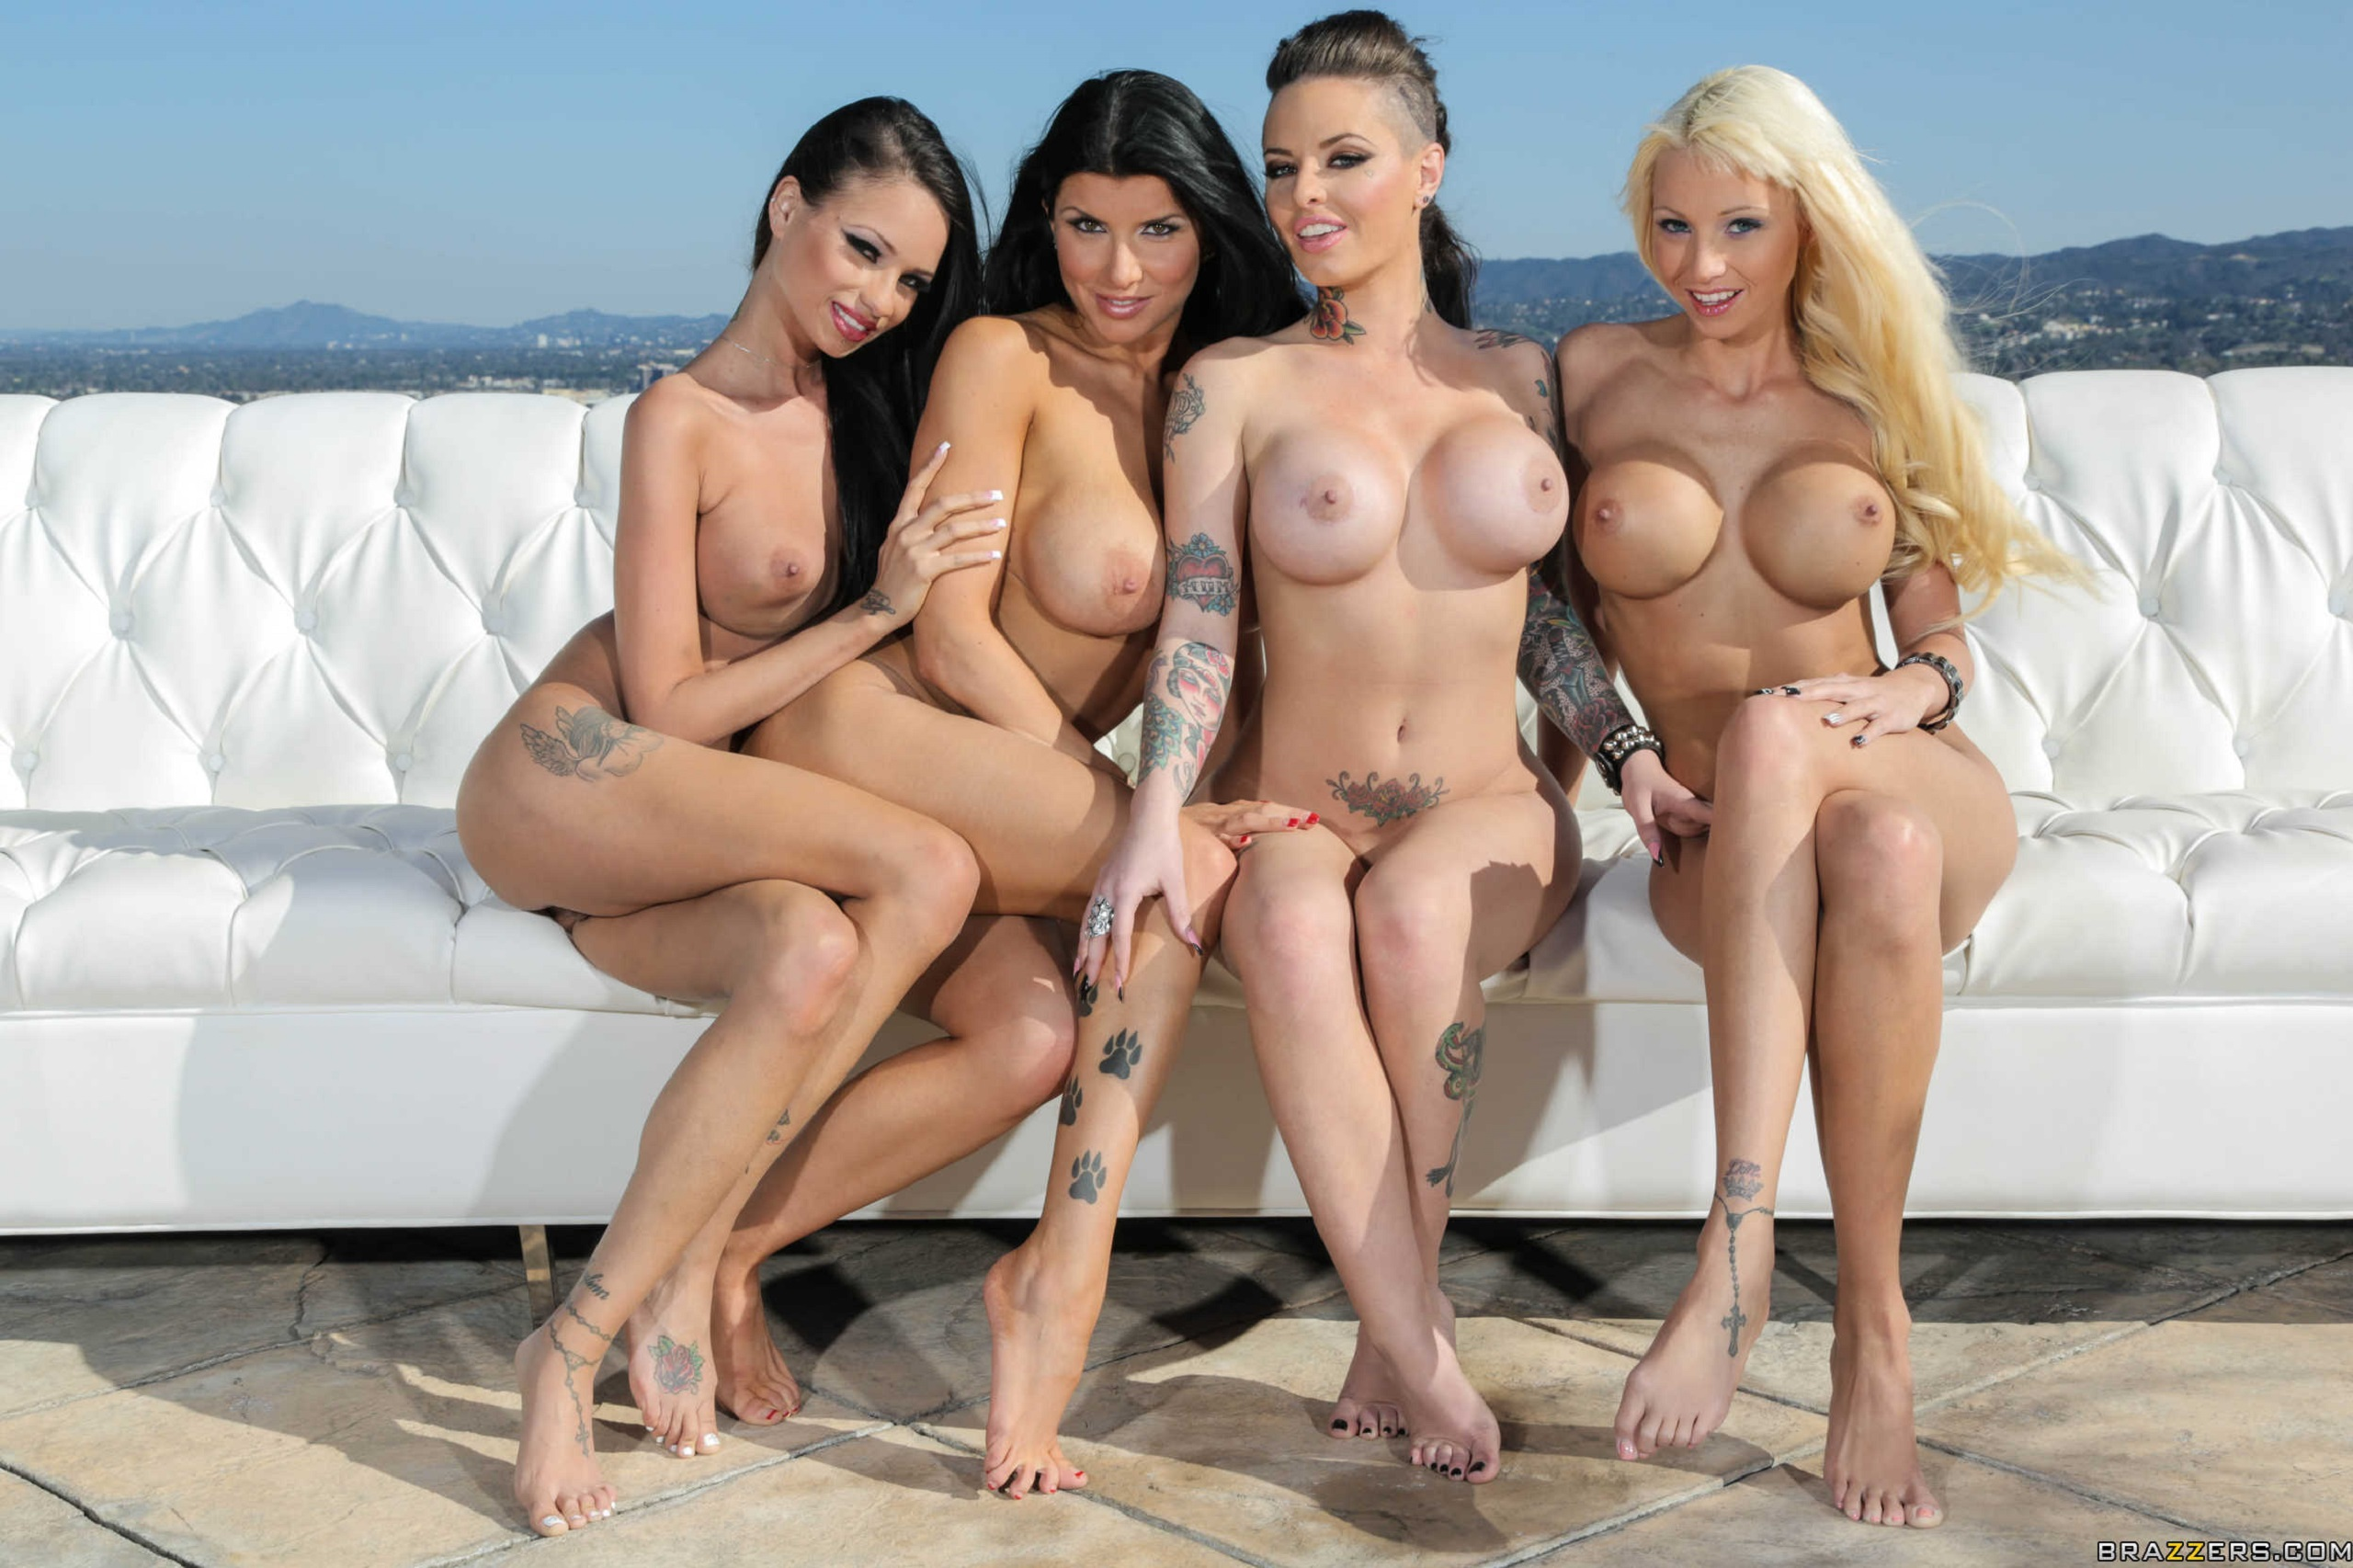 Download Photo 1920X1080, Rikki Six, Romi Rain, Raven Bay -1028